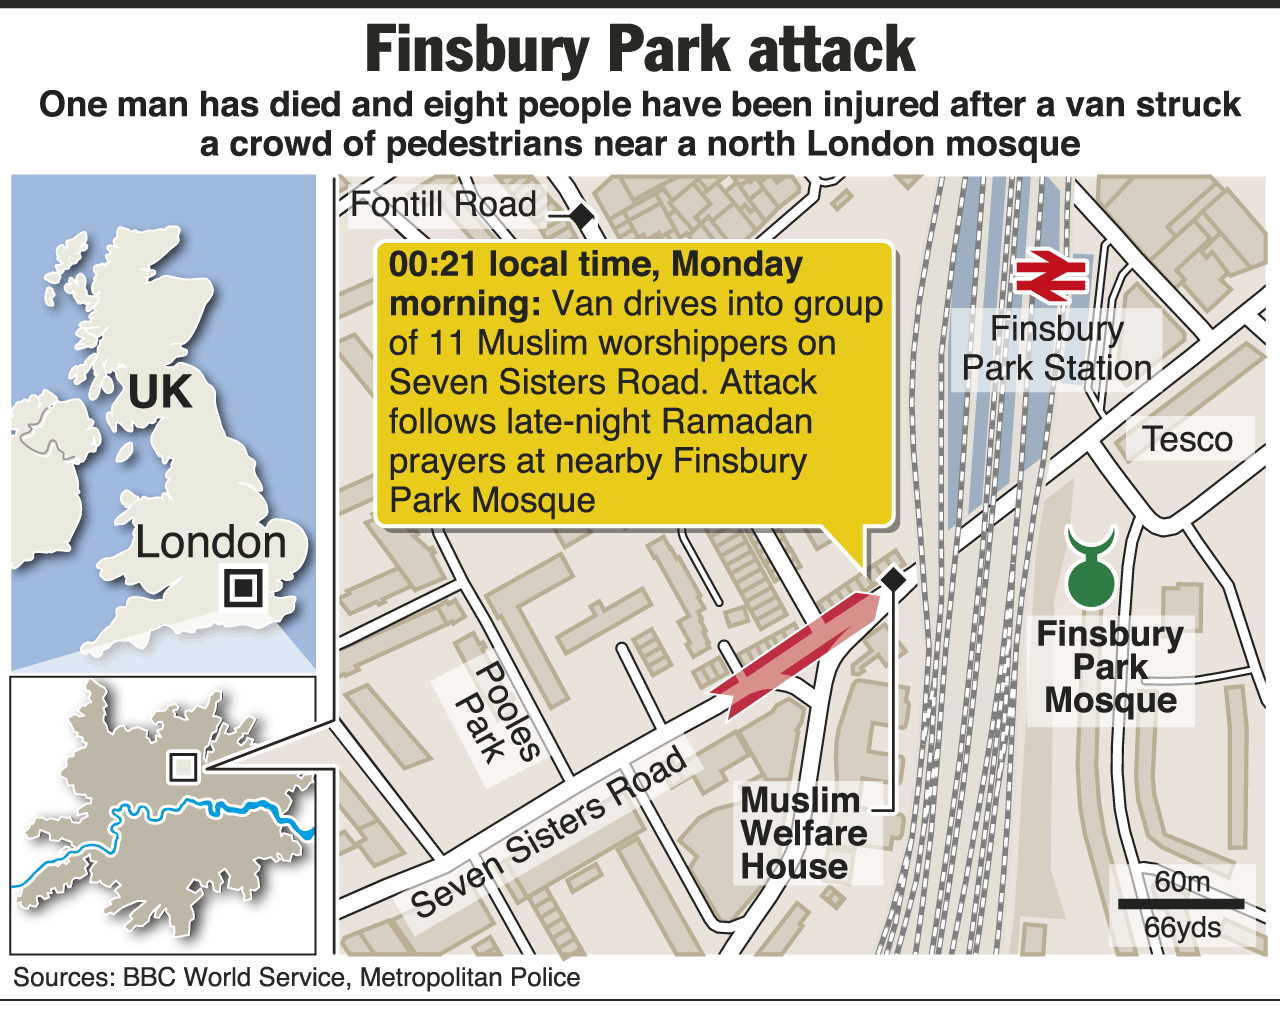 Finsbury Park attack suspect 'has been troubled for a long time'